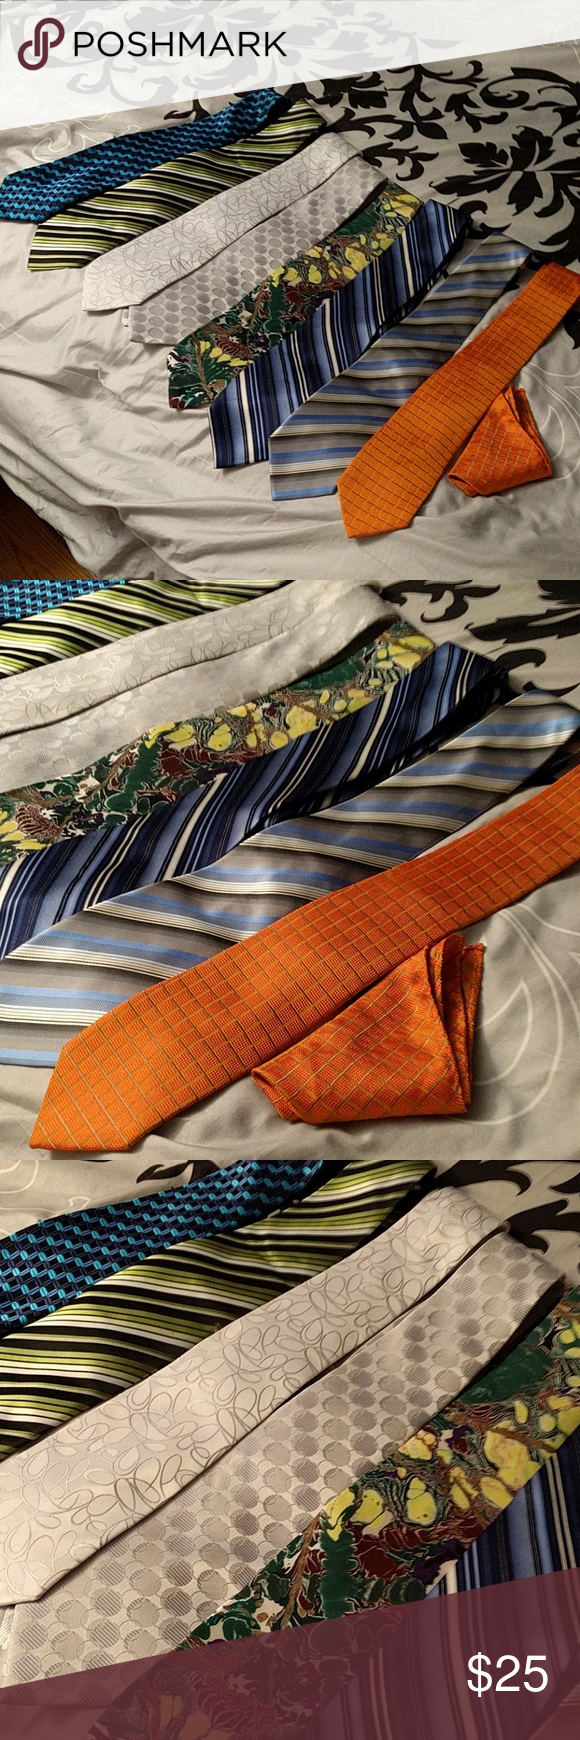 Lot of 8 Mens Ties Handkerchief Set My husband has way too many ties! Turns out he had a lot of very similar ones, so we weeded a few out. Various brands. The orange one comes with a matching kerchief.  Silver, blue, black, green, striped, floral. No flaws, all very well taken care of. Can break up if you have a specific desire, but I would love to sell as a lot just for simplicity. Accessories Ties